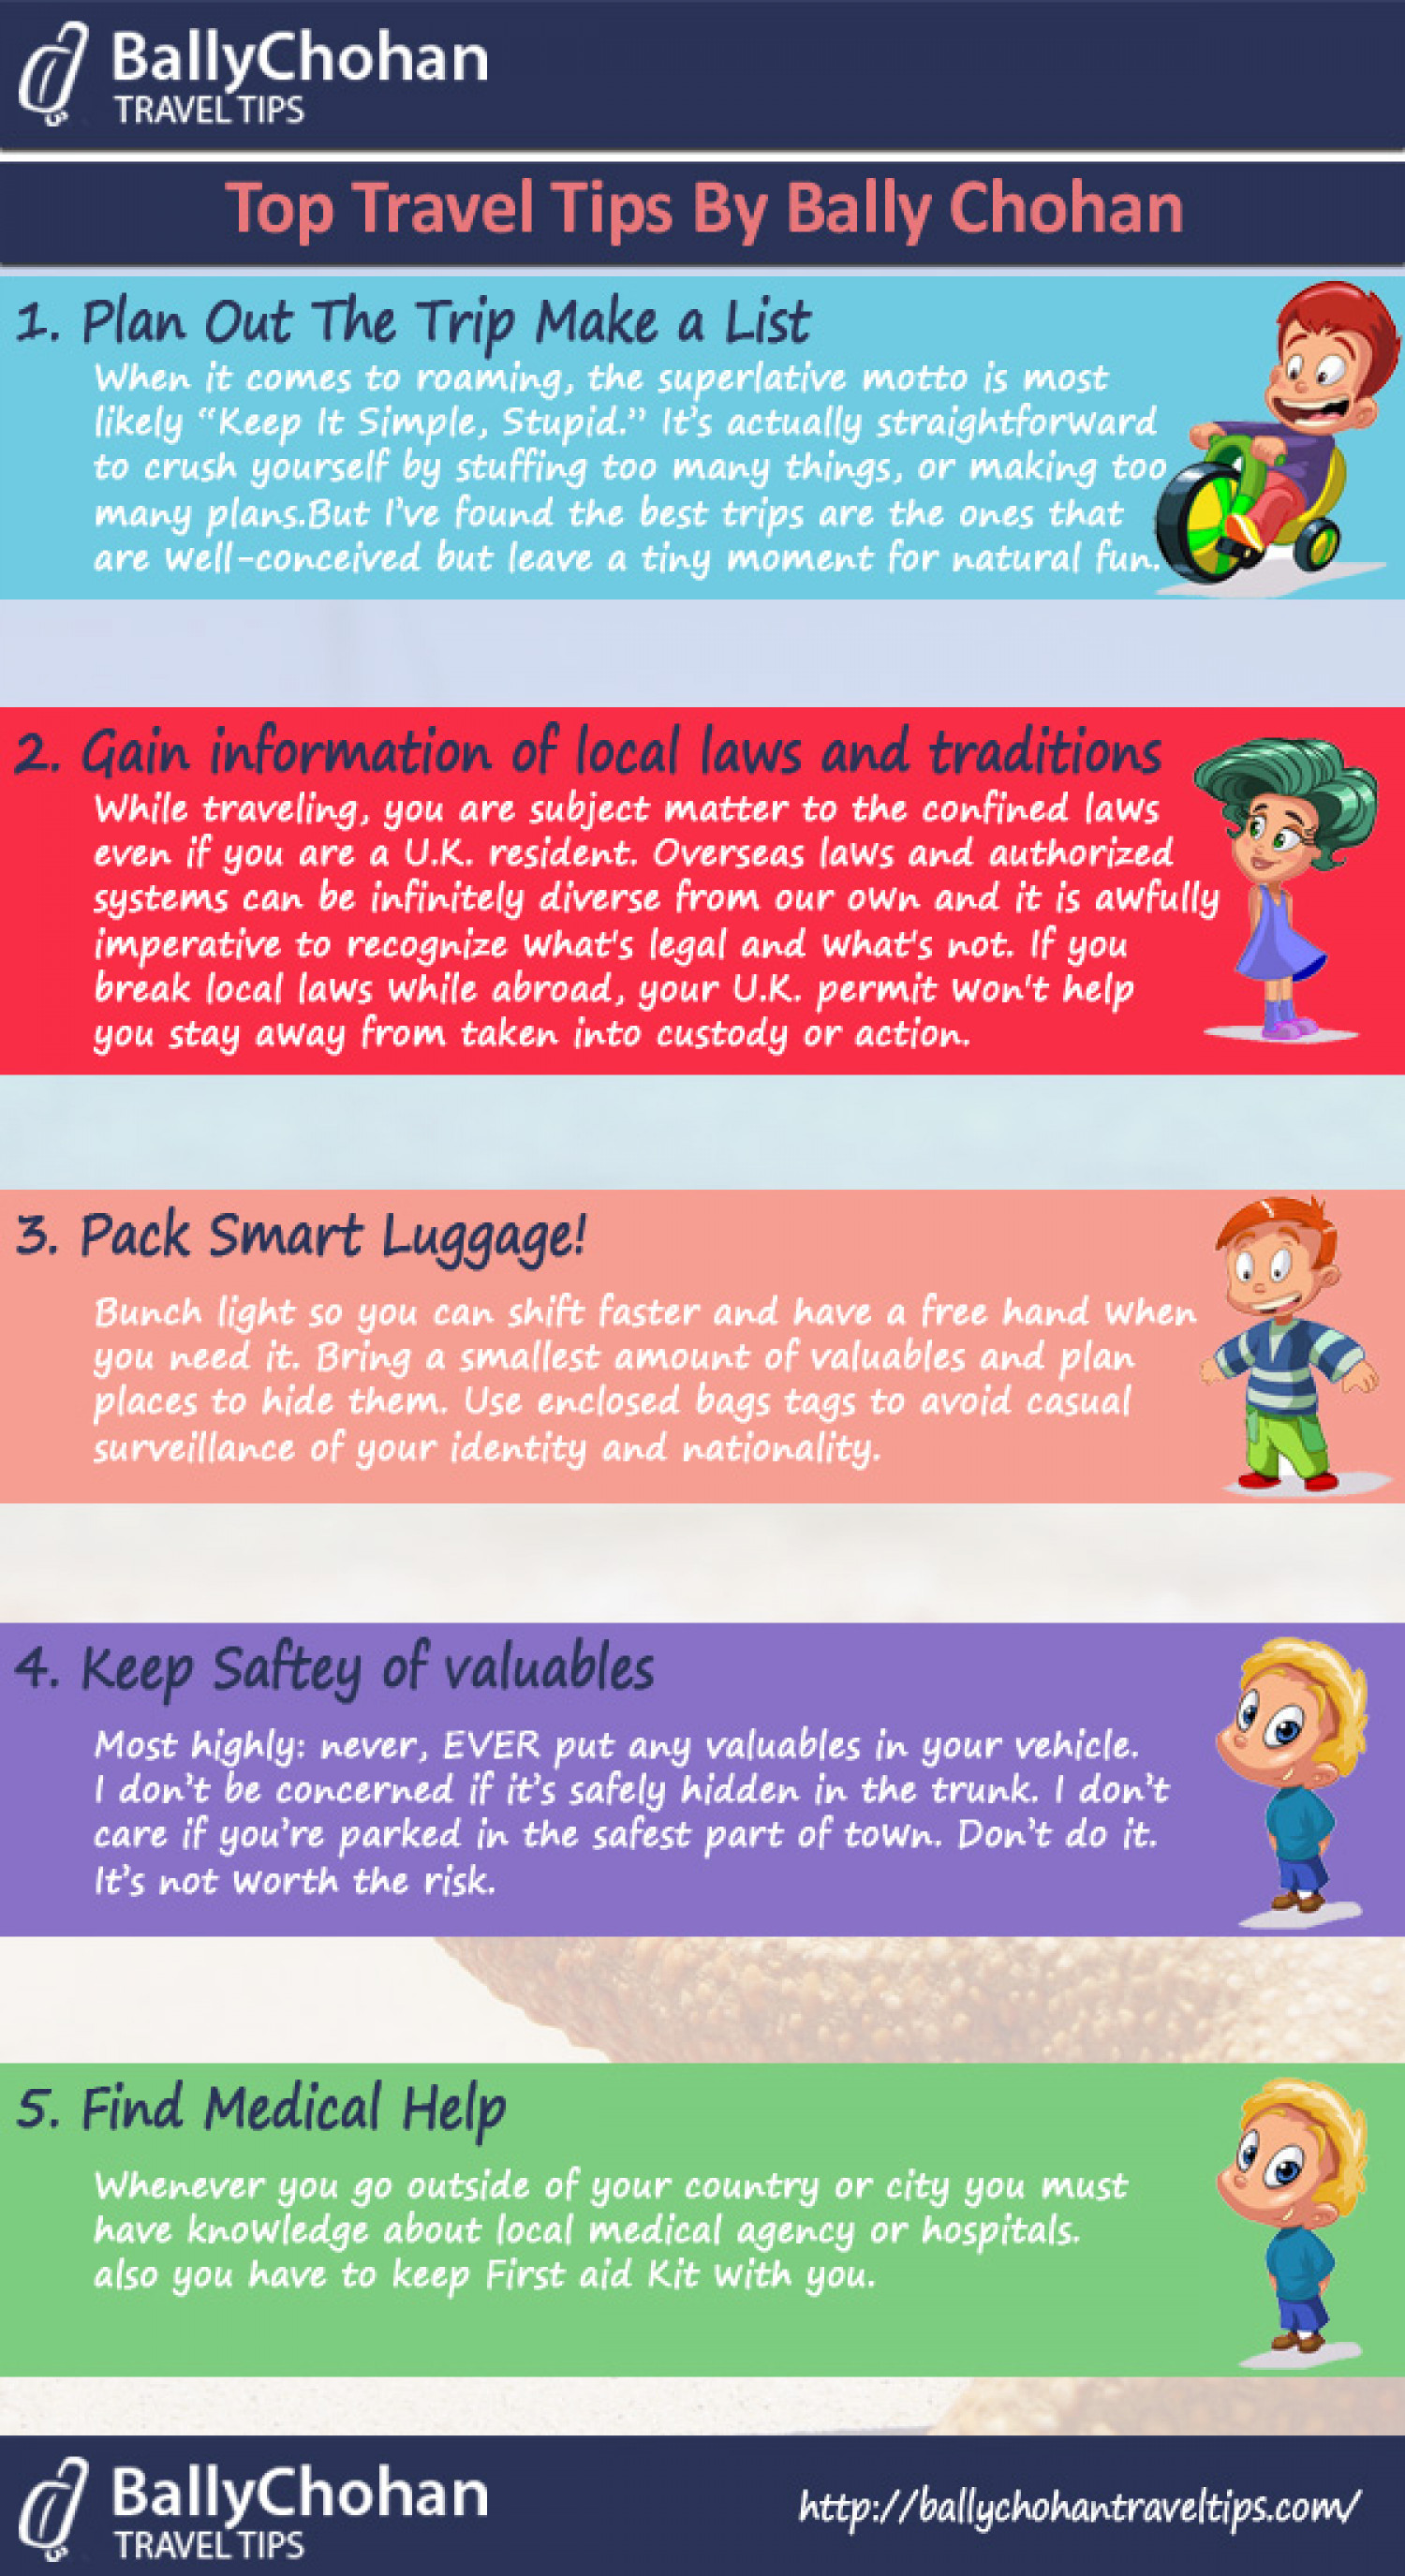 Top Travel Tips By Bally Chohan Infographic